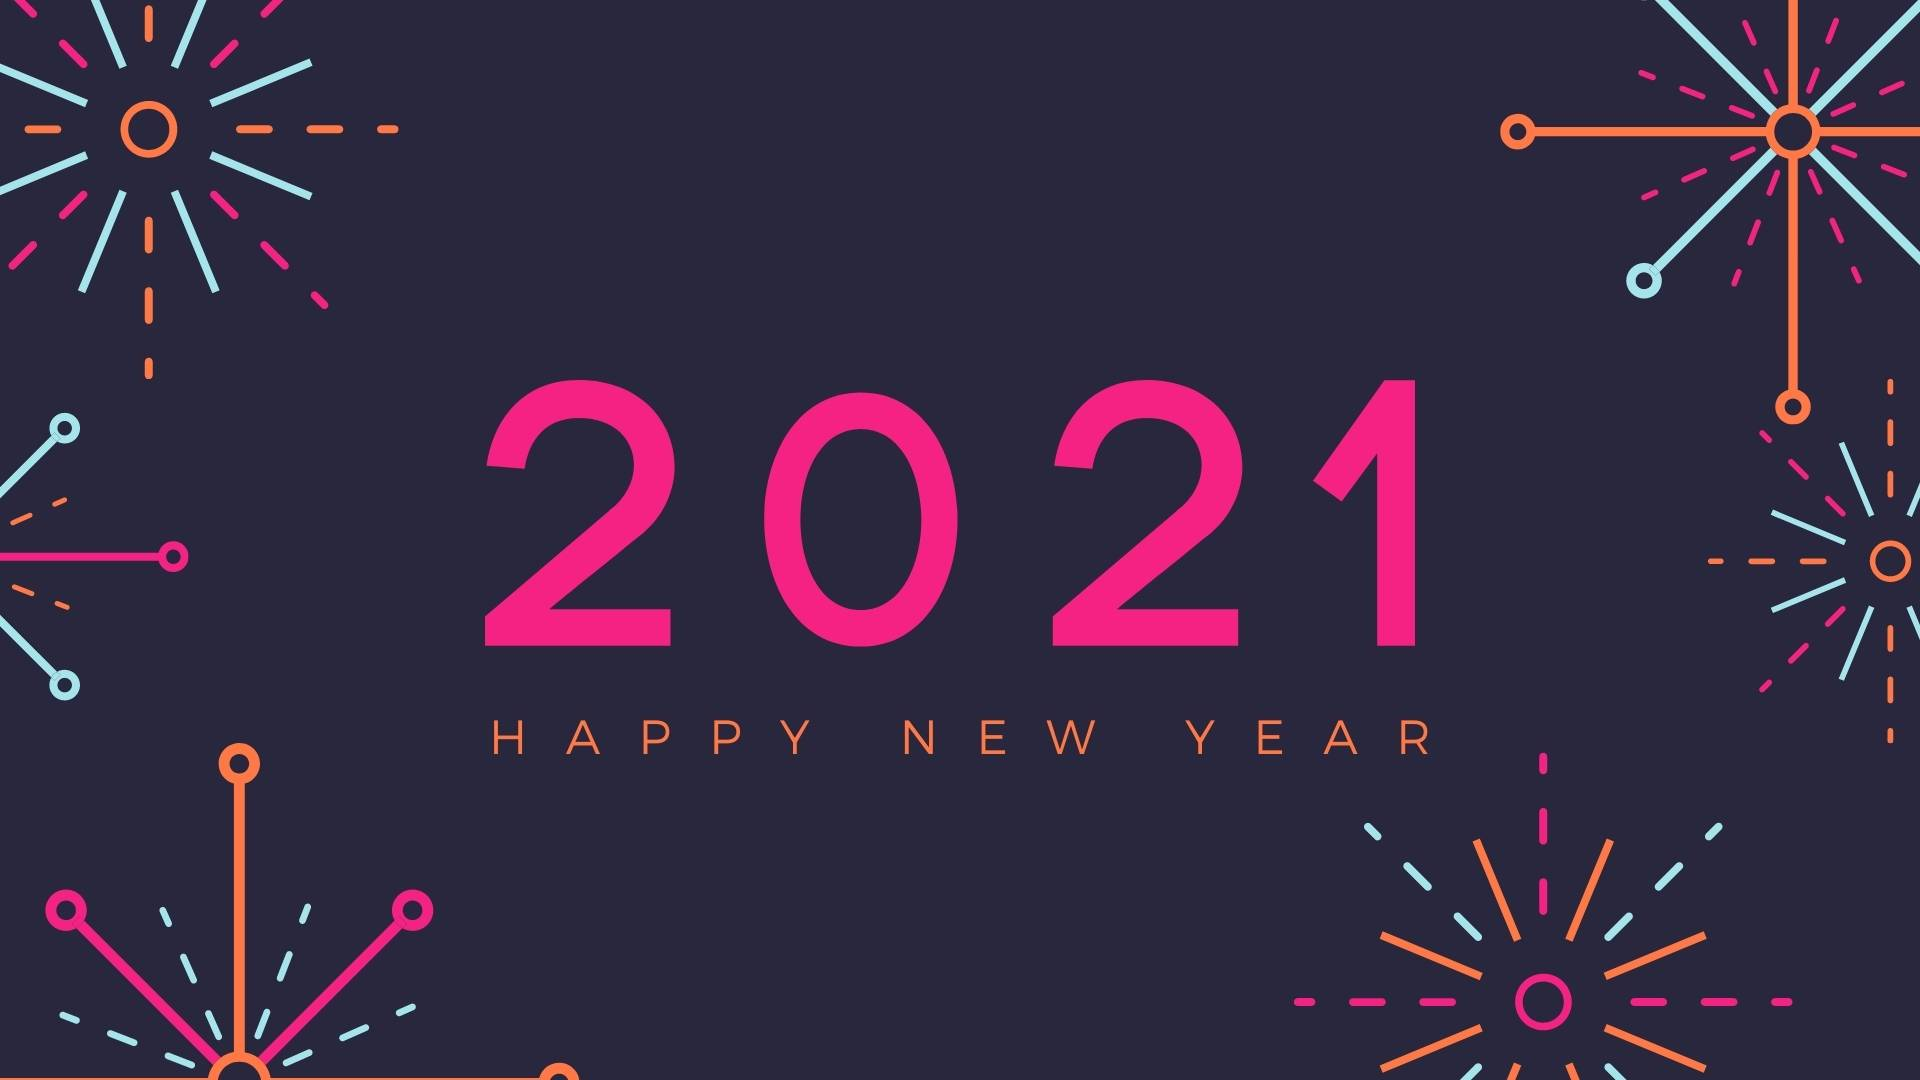 Happy New Year 2021 Wallpapers HD Images   Happy New Year 2021 1920x1080